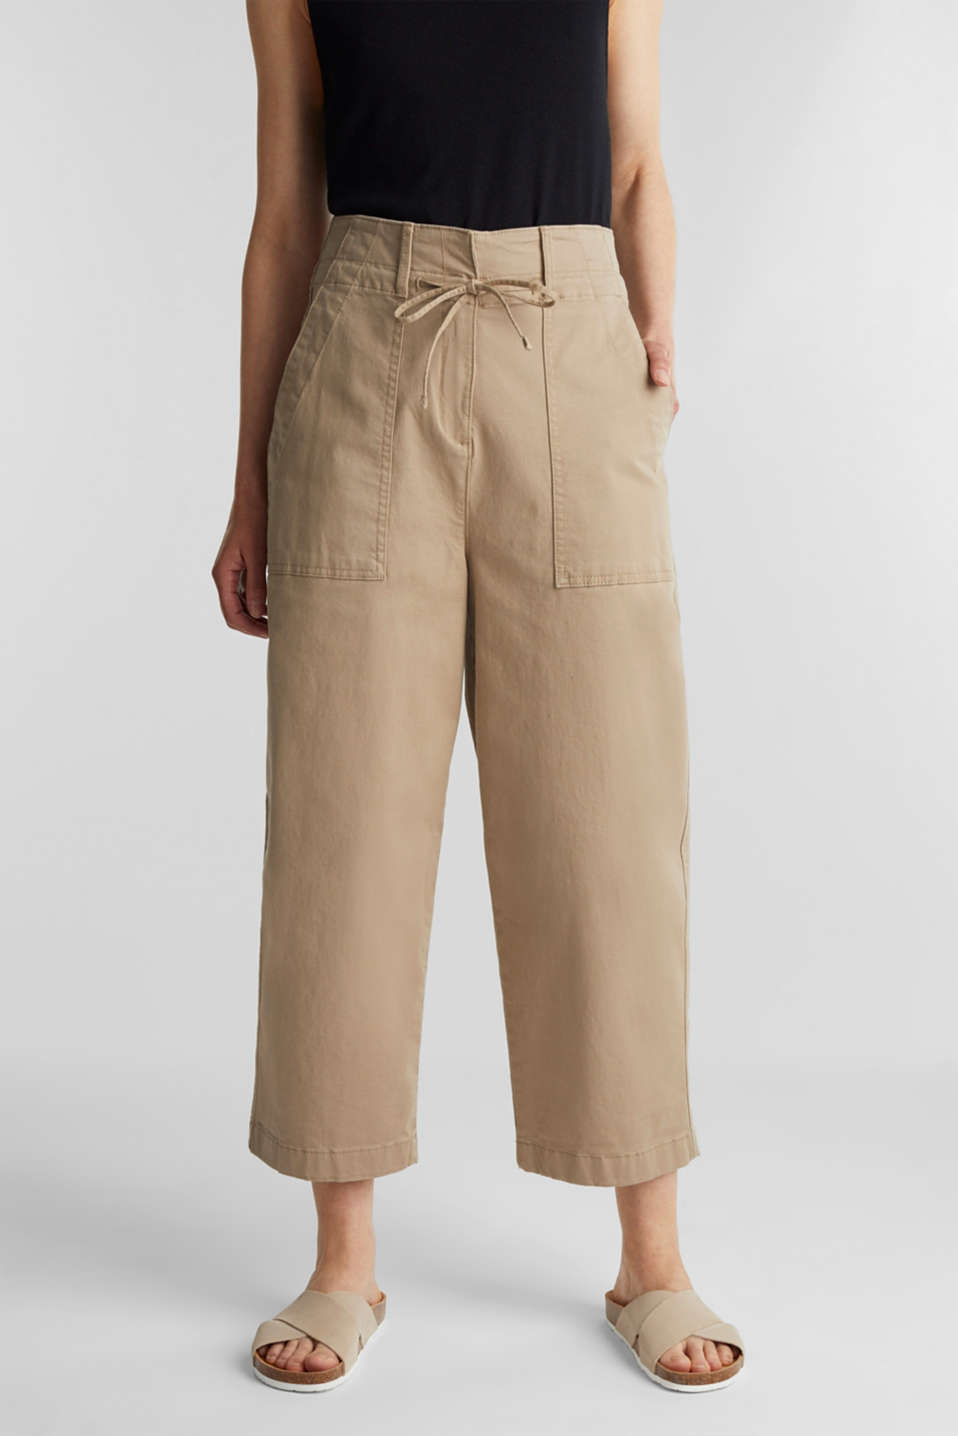 Esprit - High-waisted culottes